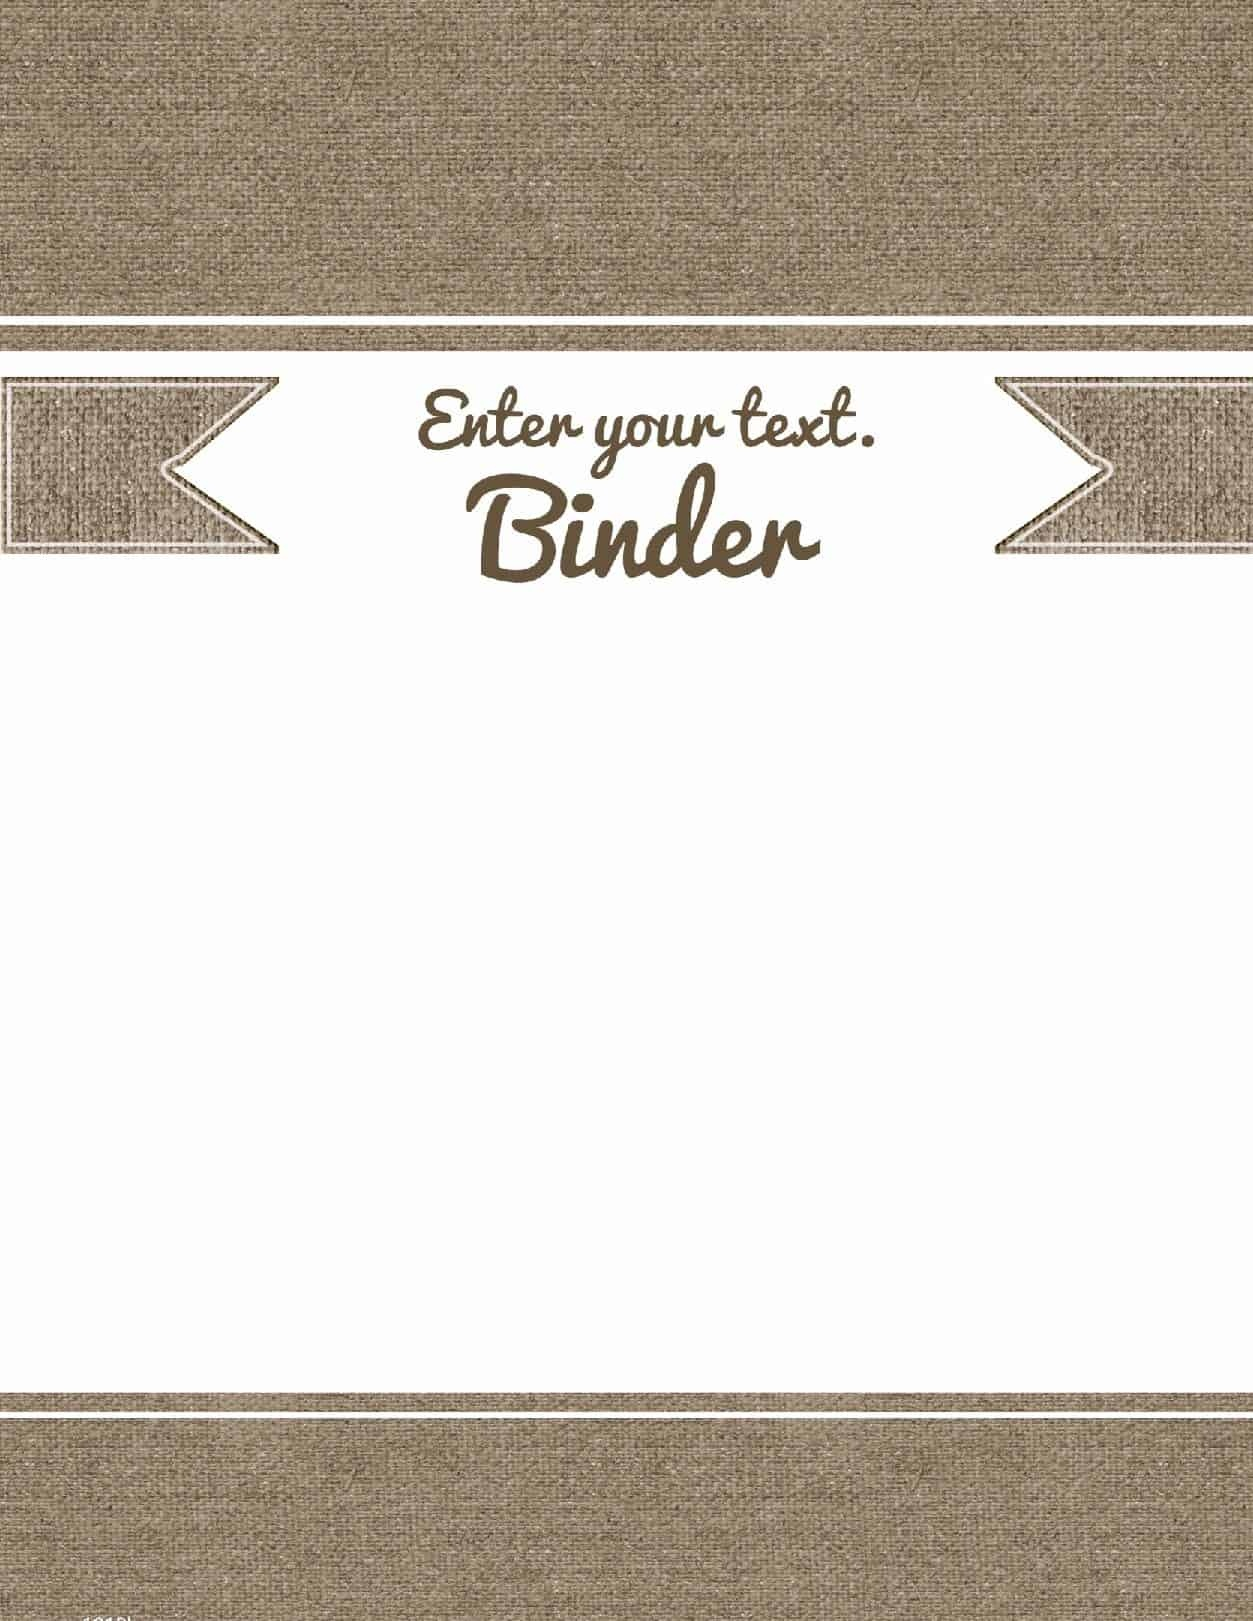 Free Binder Cover Templates | Customize Online & Print At Home | Free! - Free Printable Customizable Binder Covers